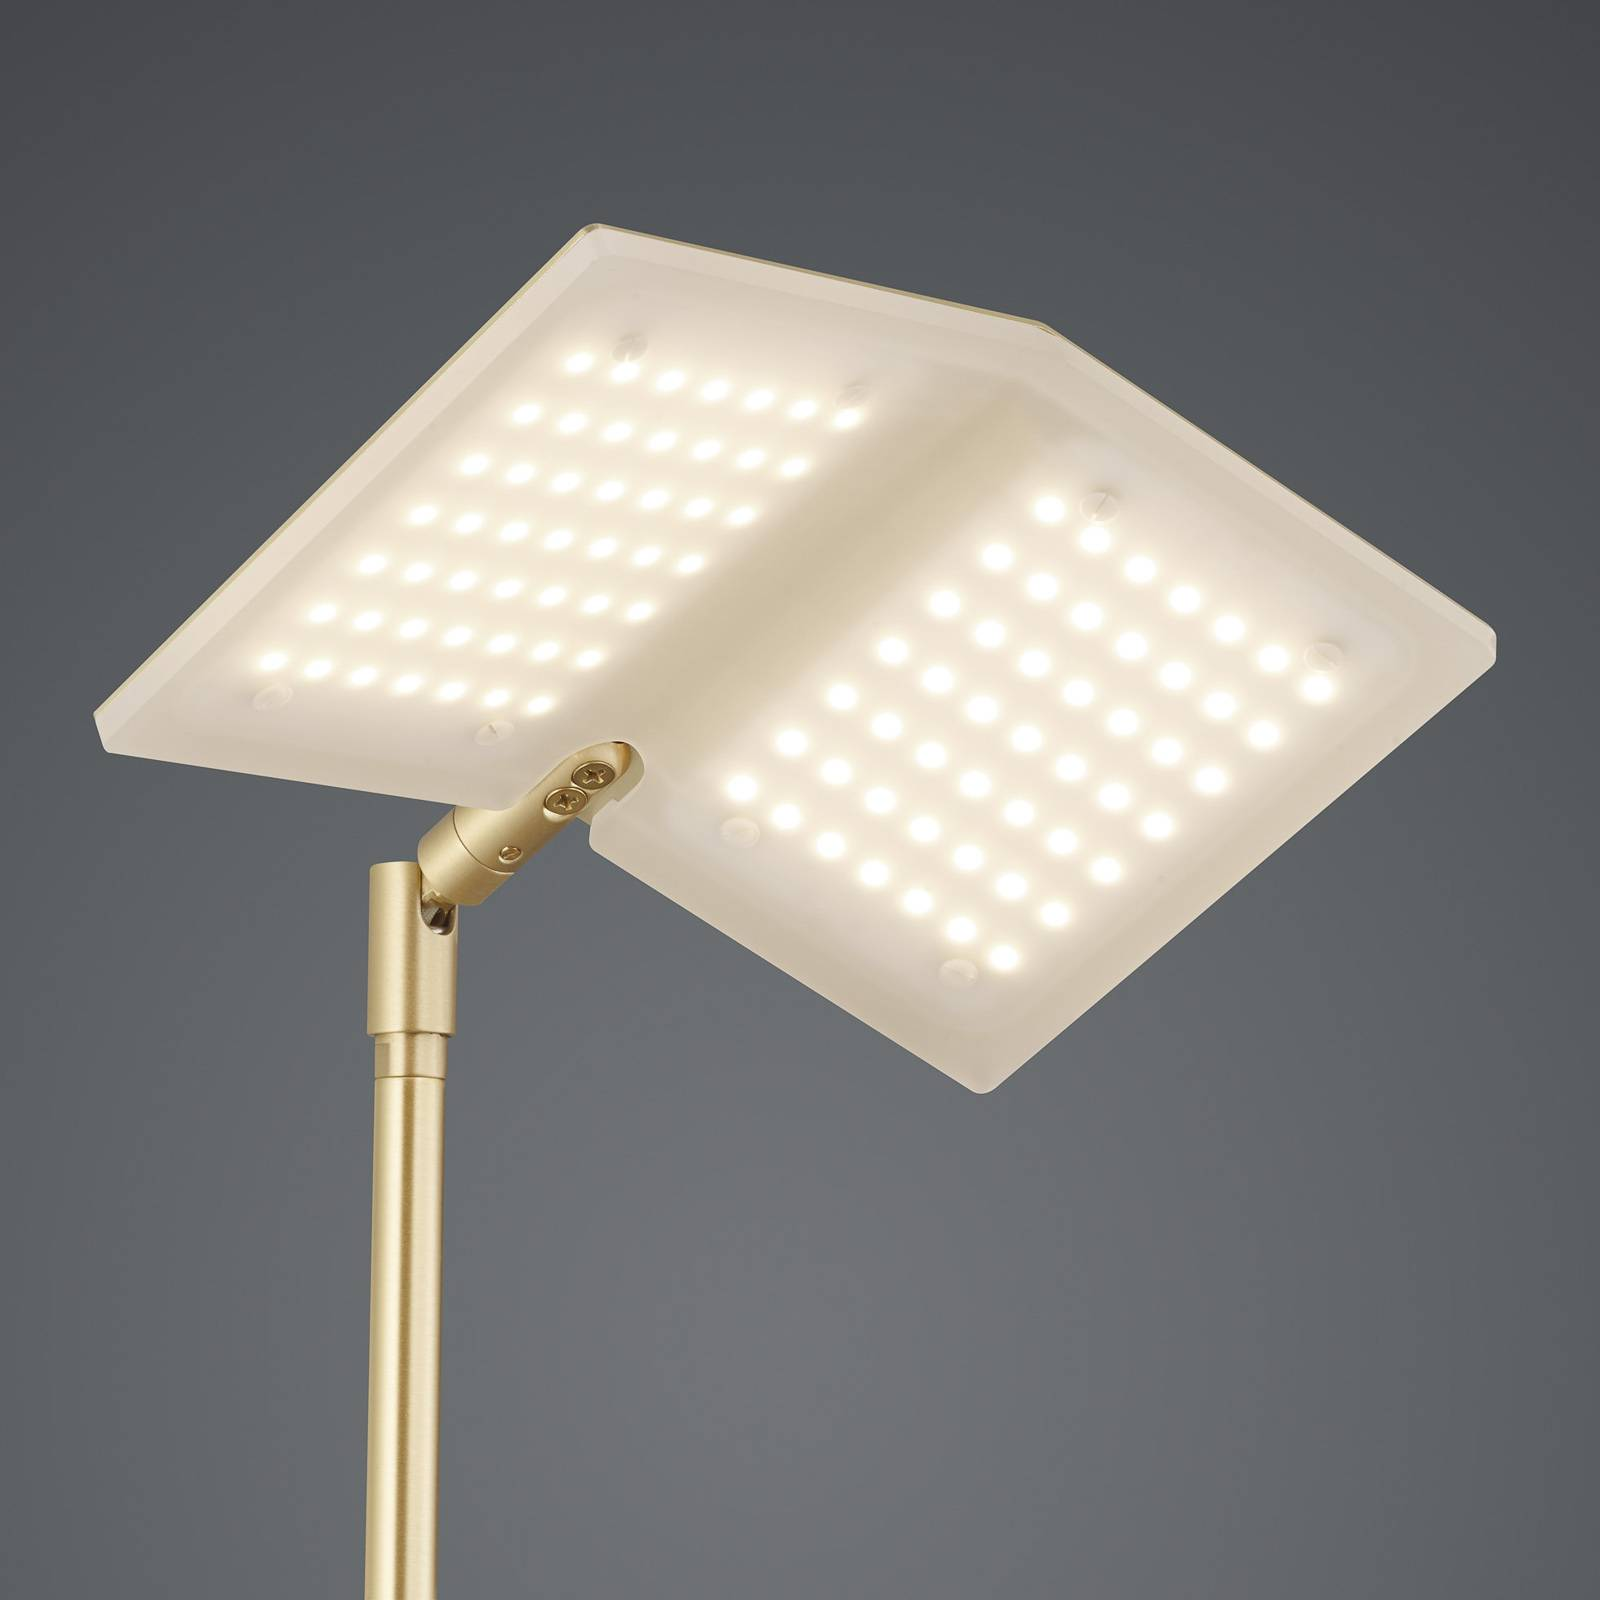 BANKAMP Book LED vloerlamp messing